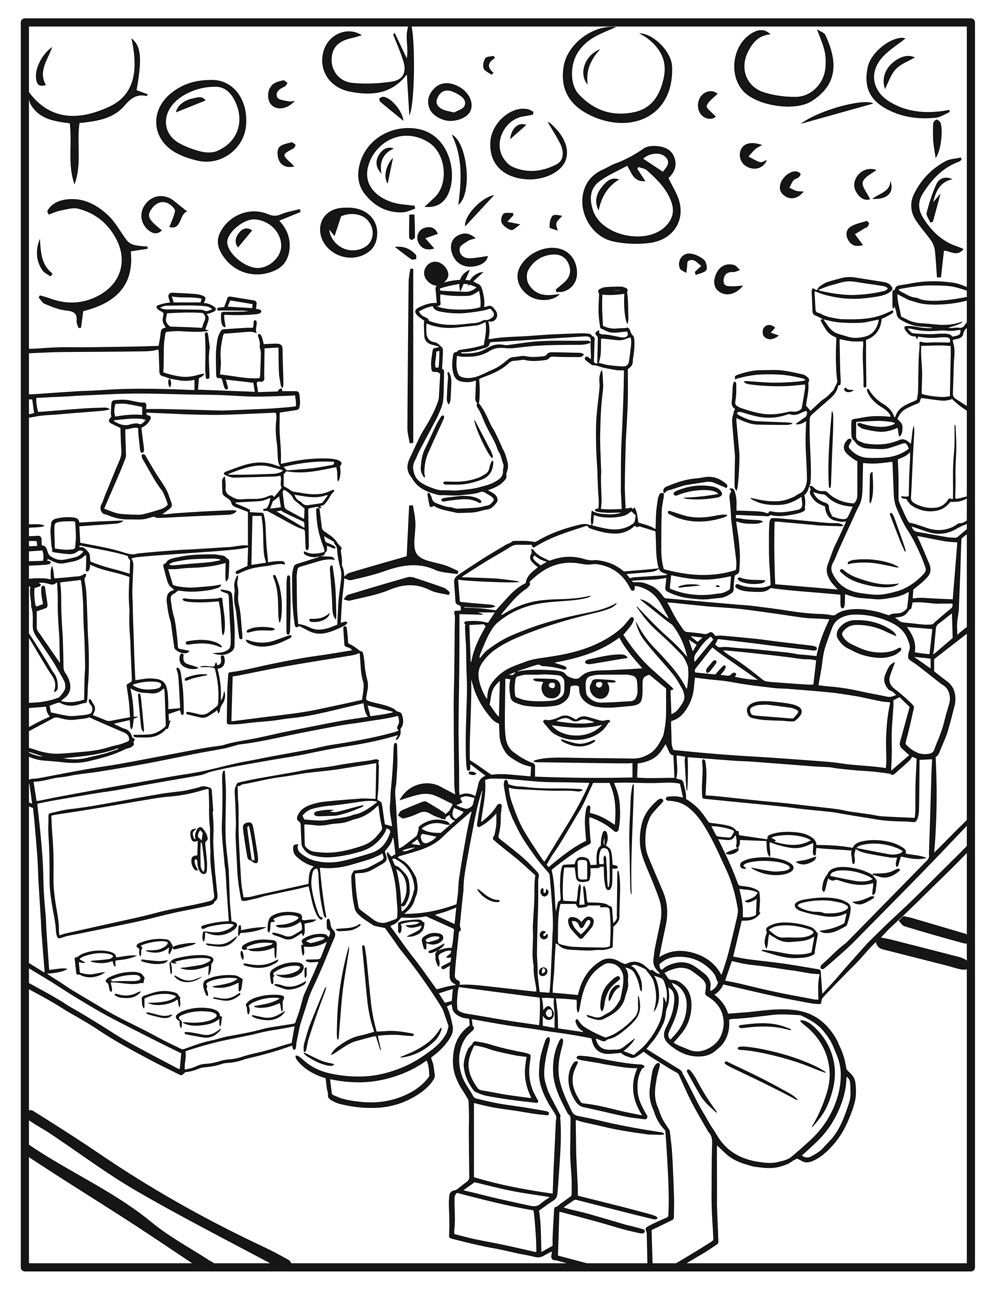 Lego Inspired Printable Coloring Pages Lego Coloring Coloring Pages Printable Coloring Pages